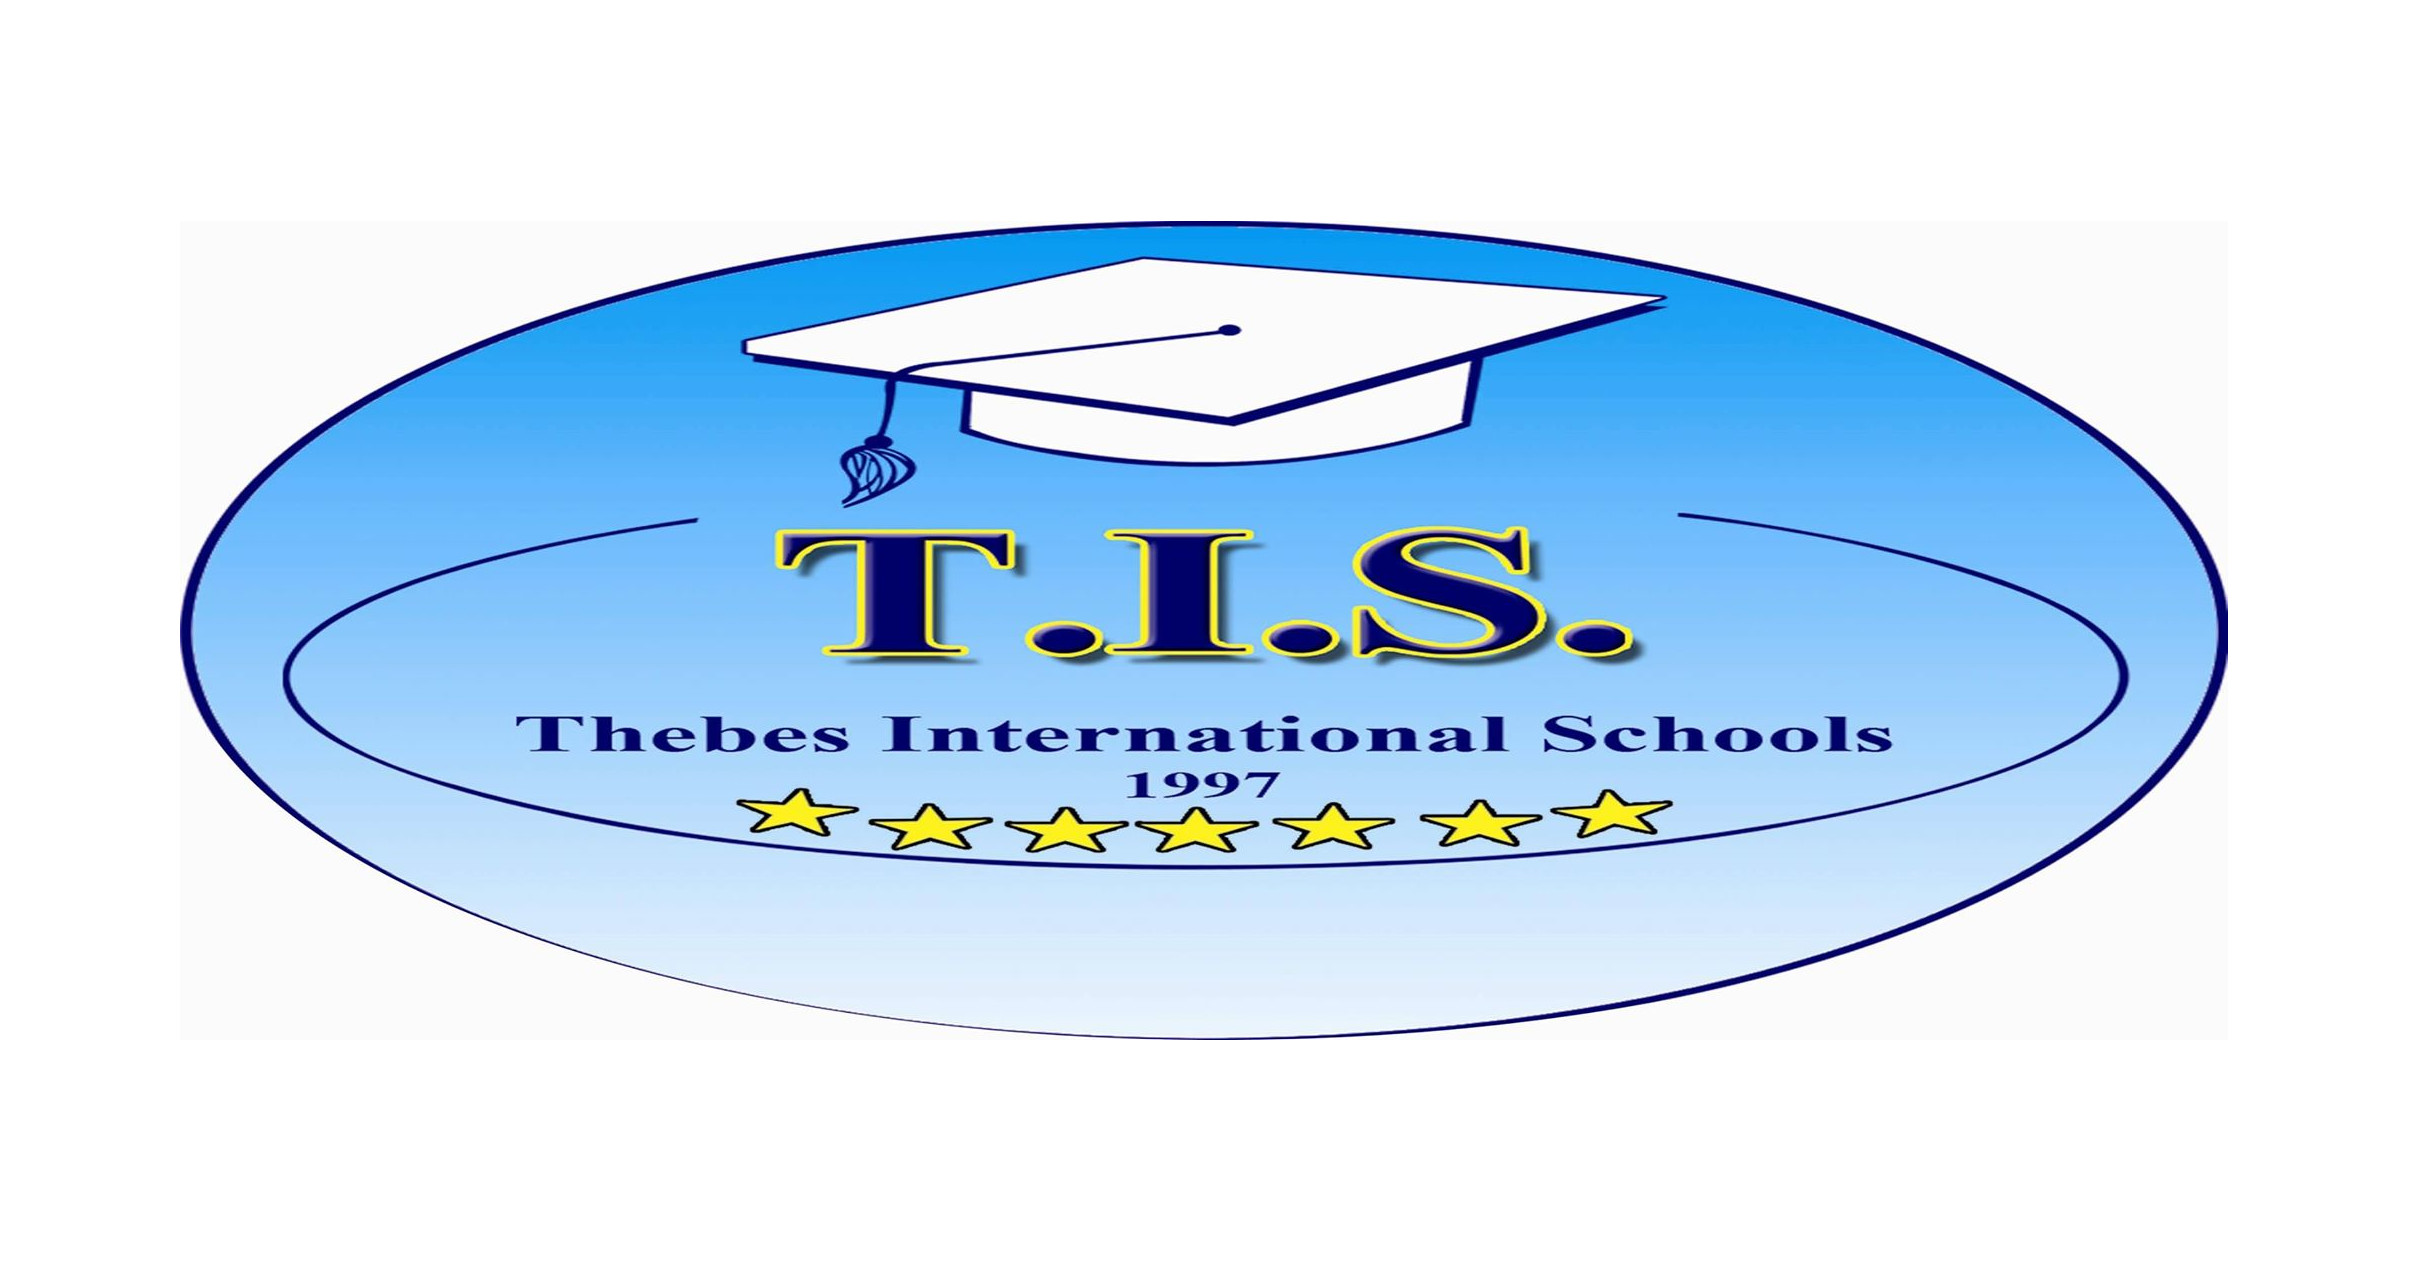 Thebes International School